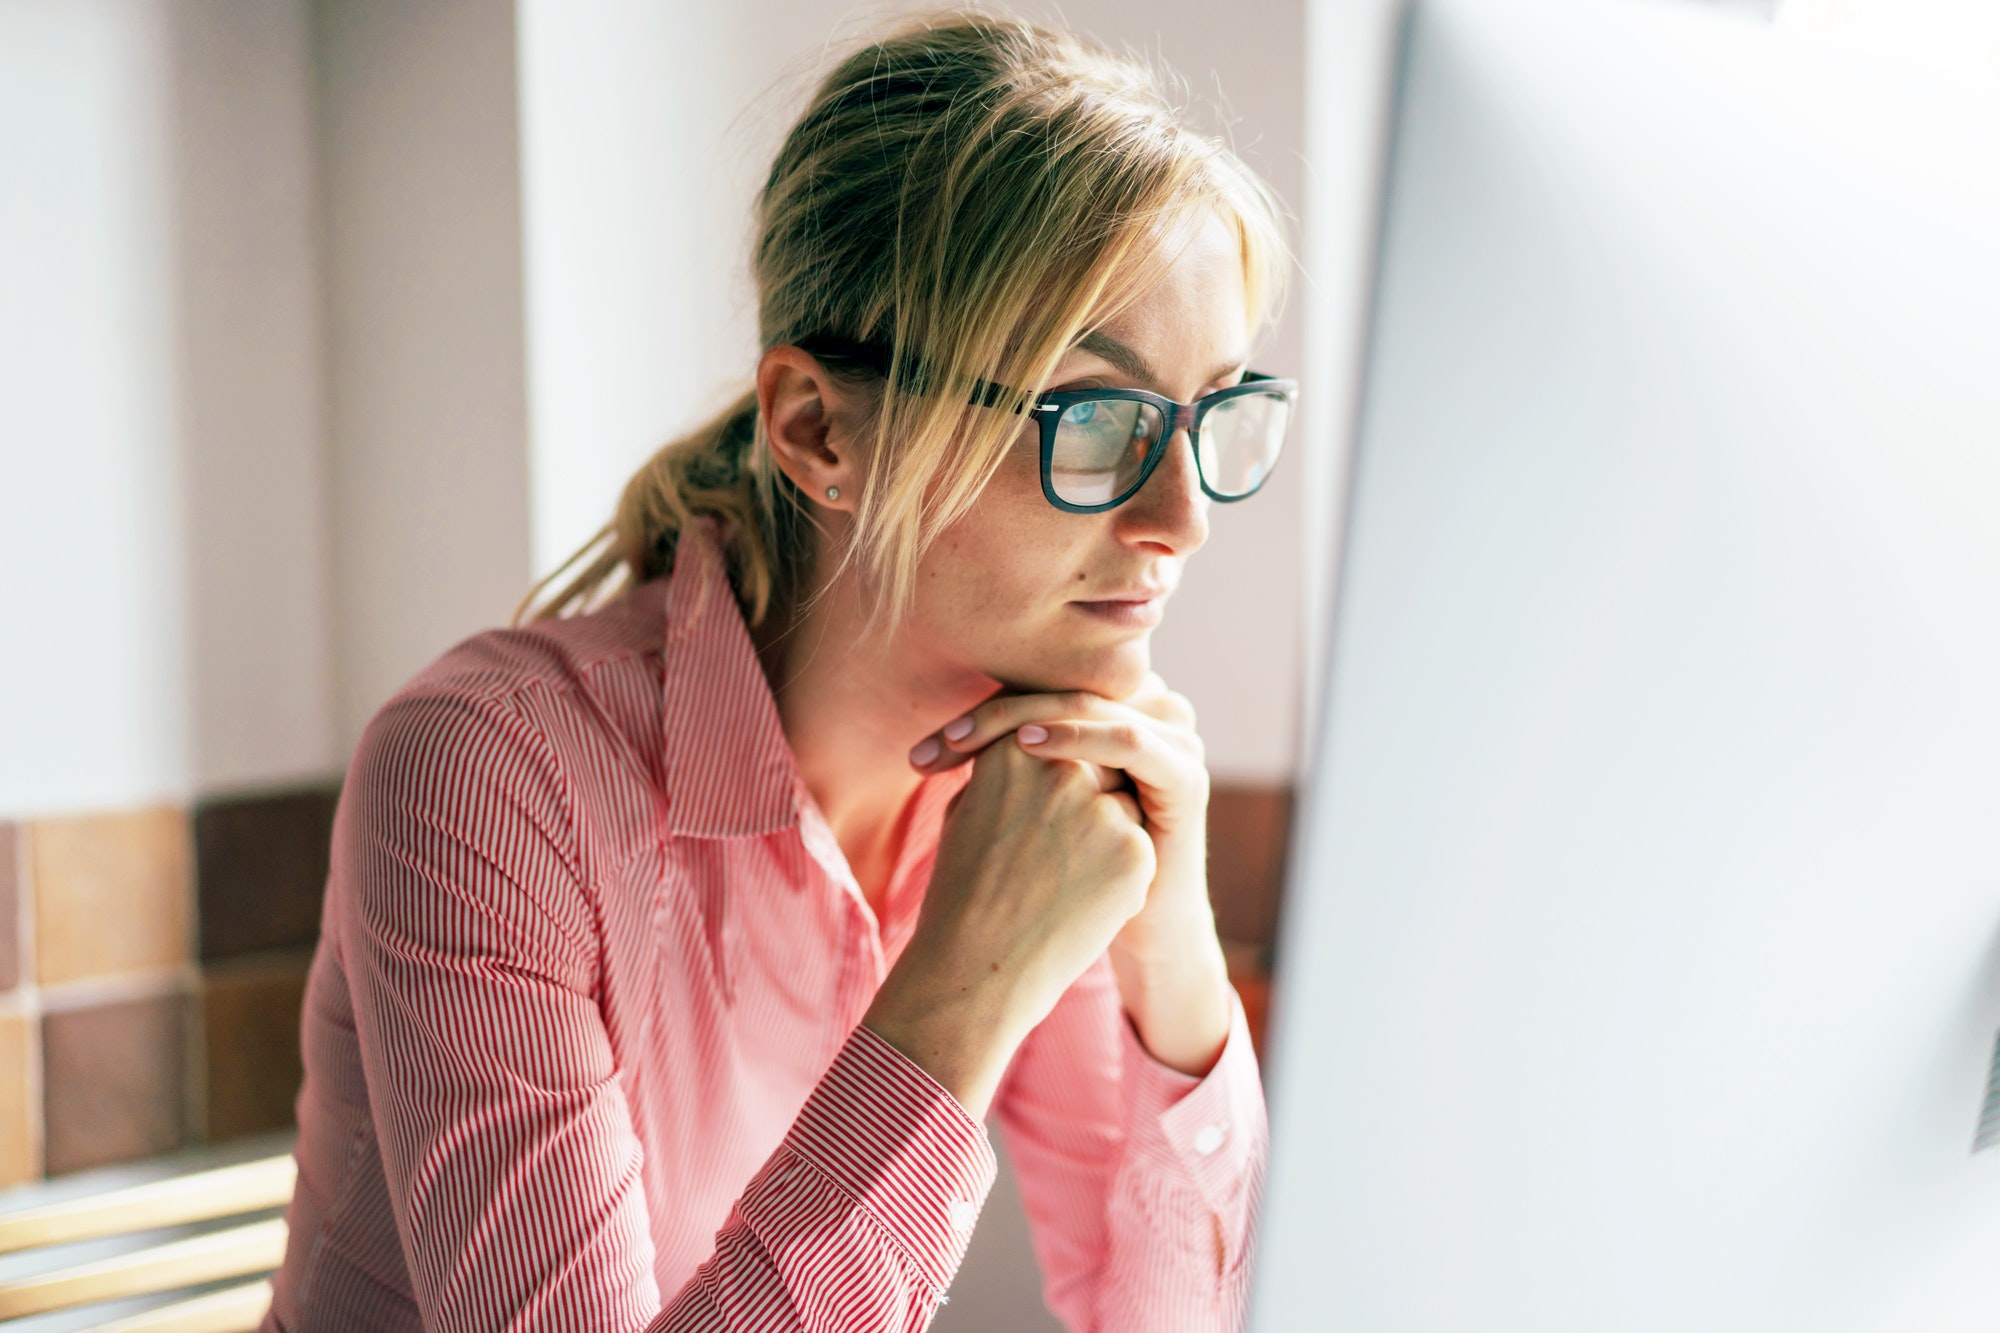 Woman wearing glasses concentrating on her computer screen